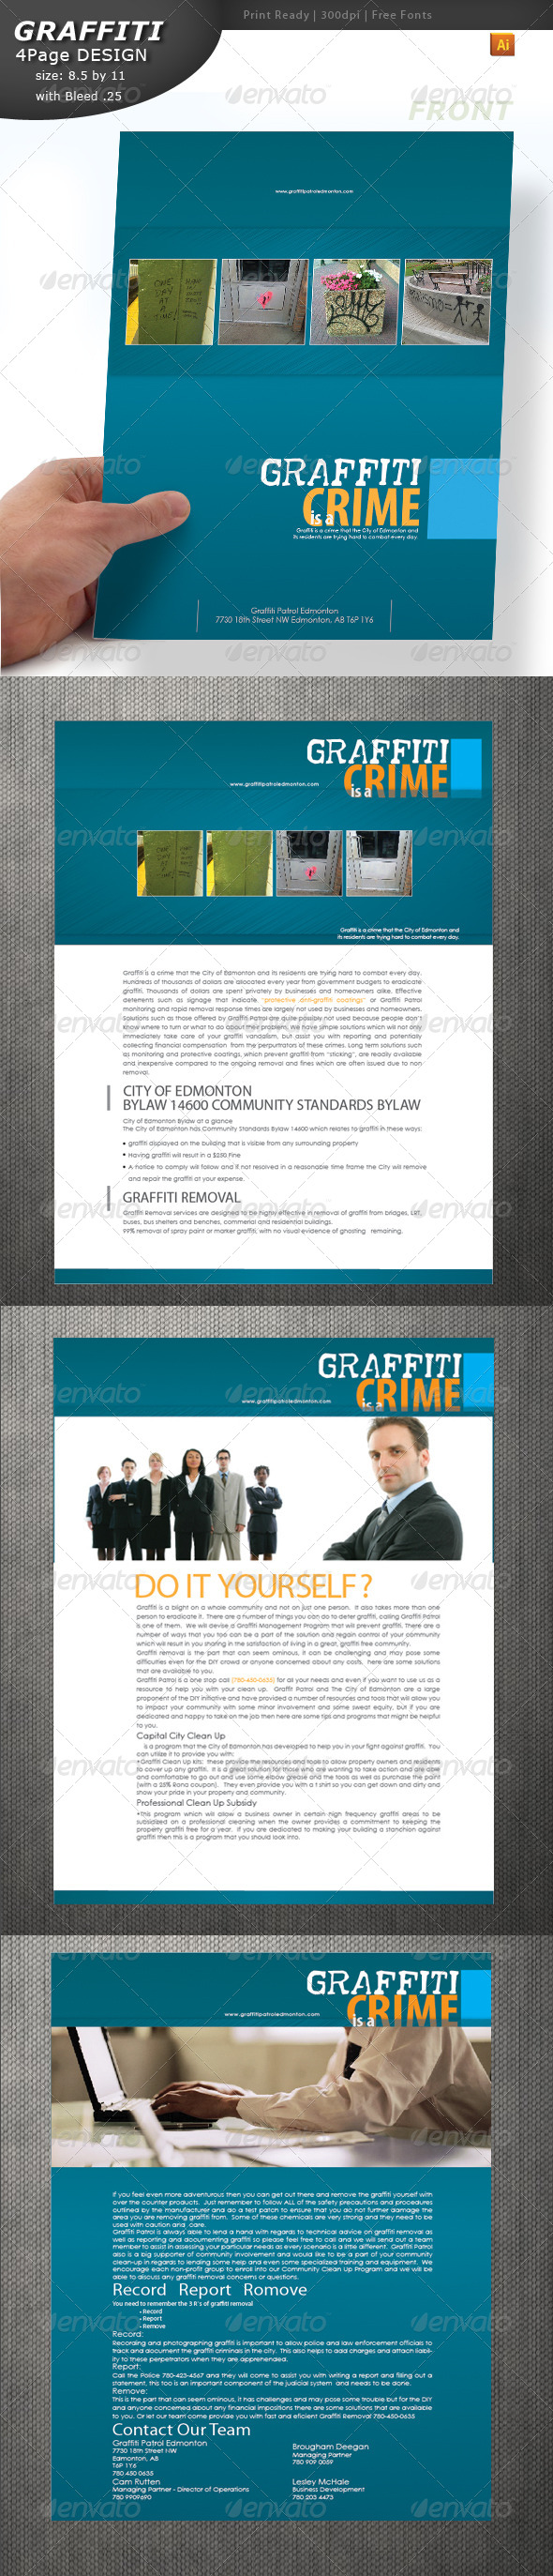 GraphicRiver Graffiti Brochure 4480012